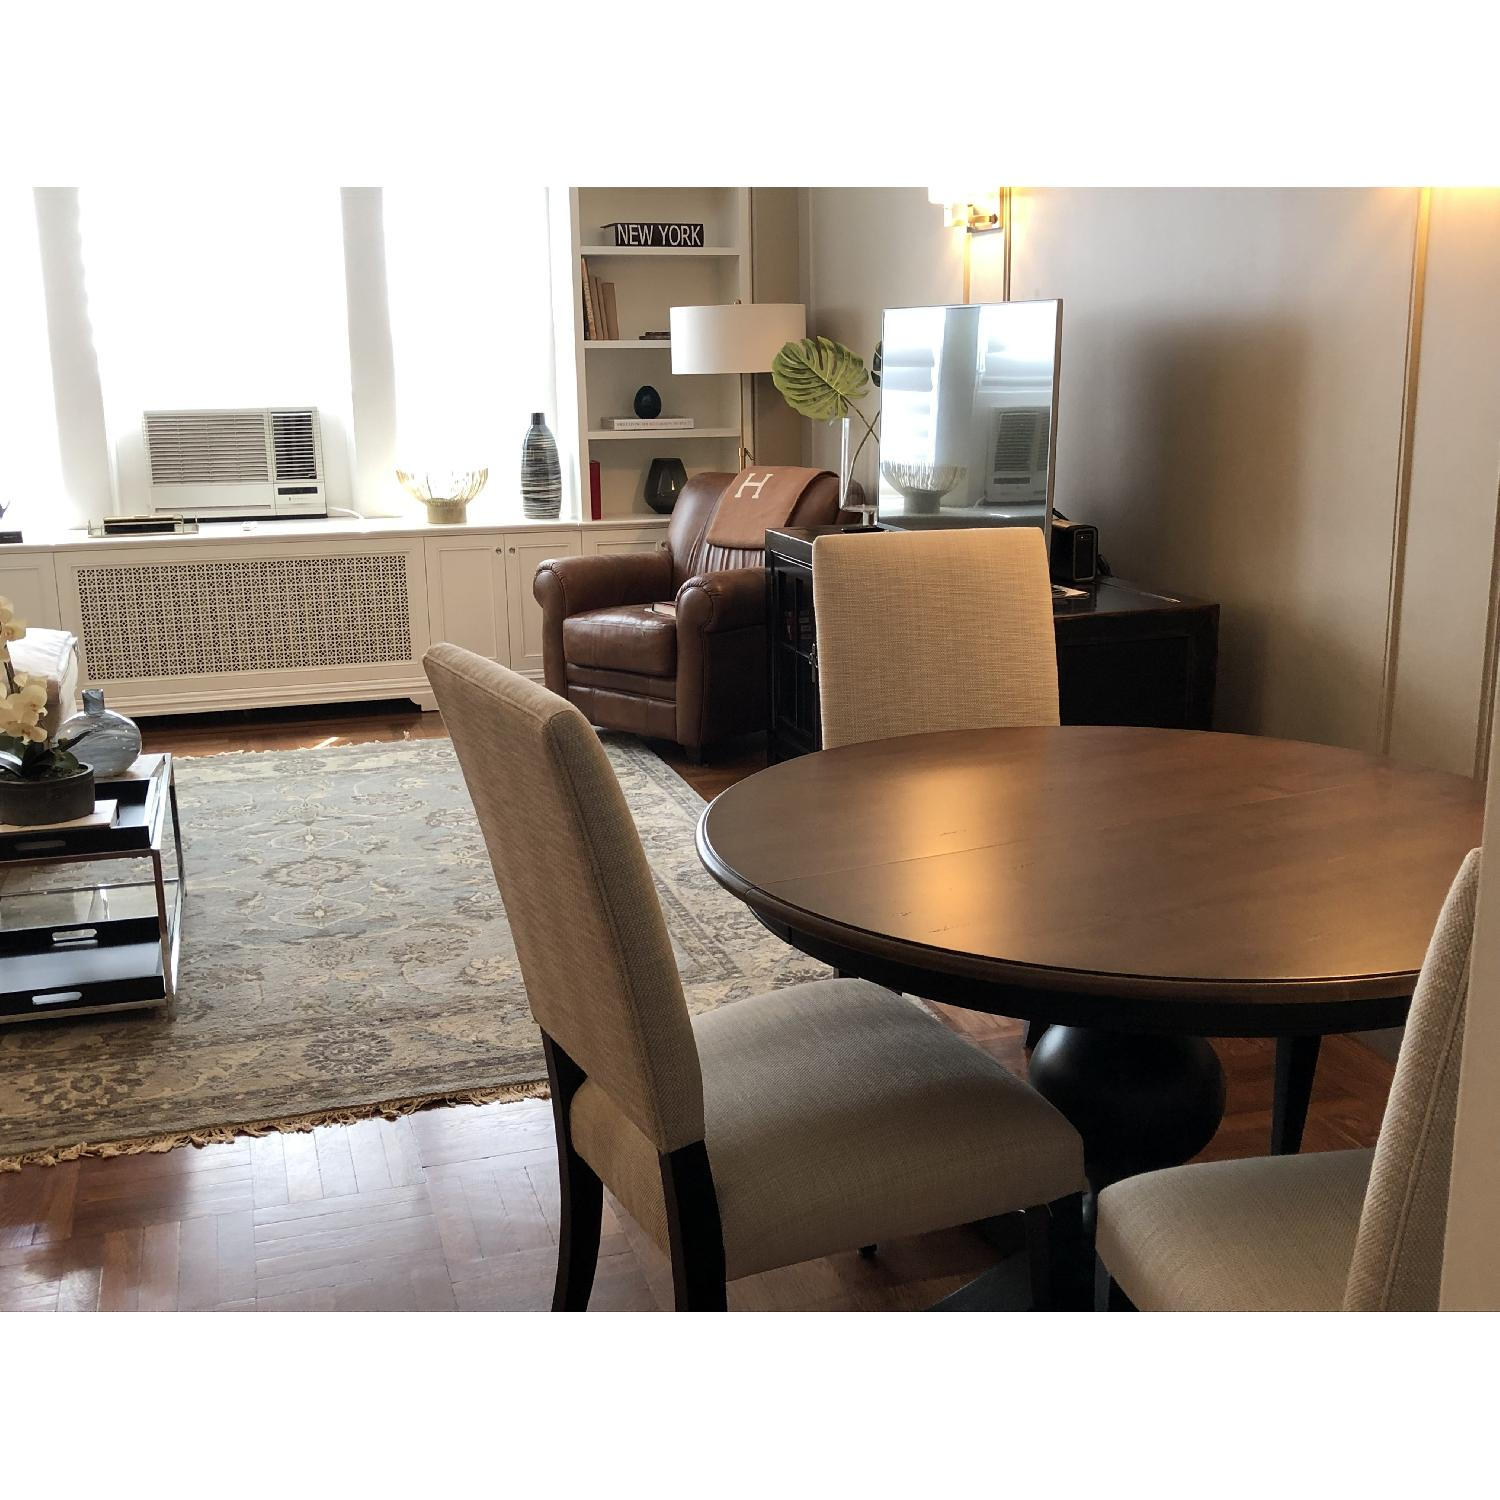 Ethan Allen Expandable Dining Table w/ 4 Chairs - image-1